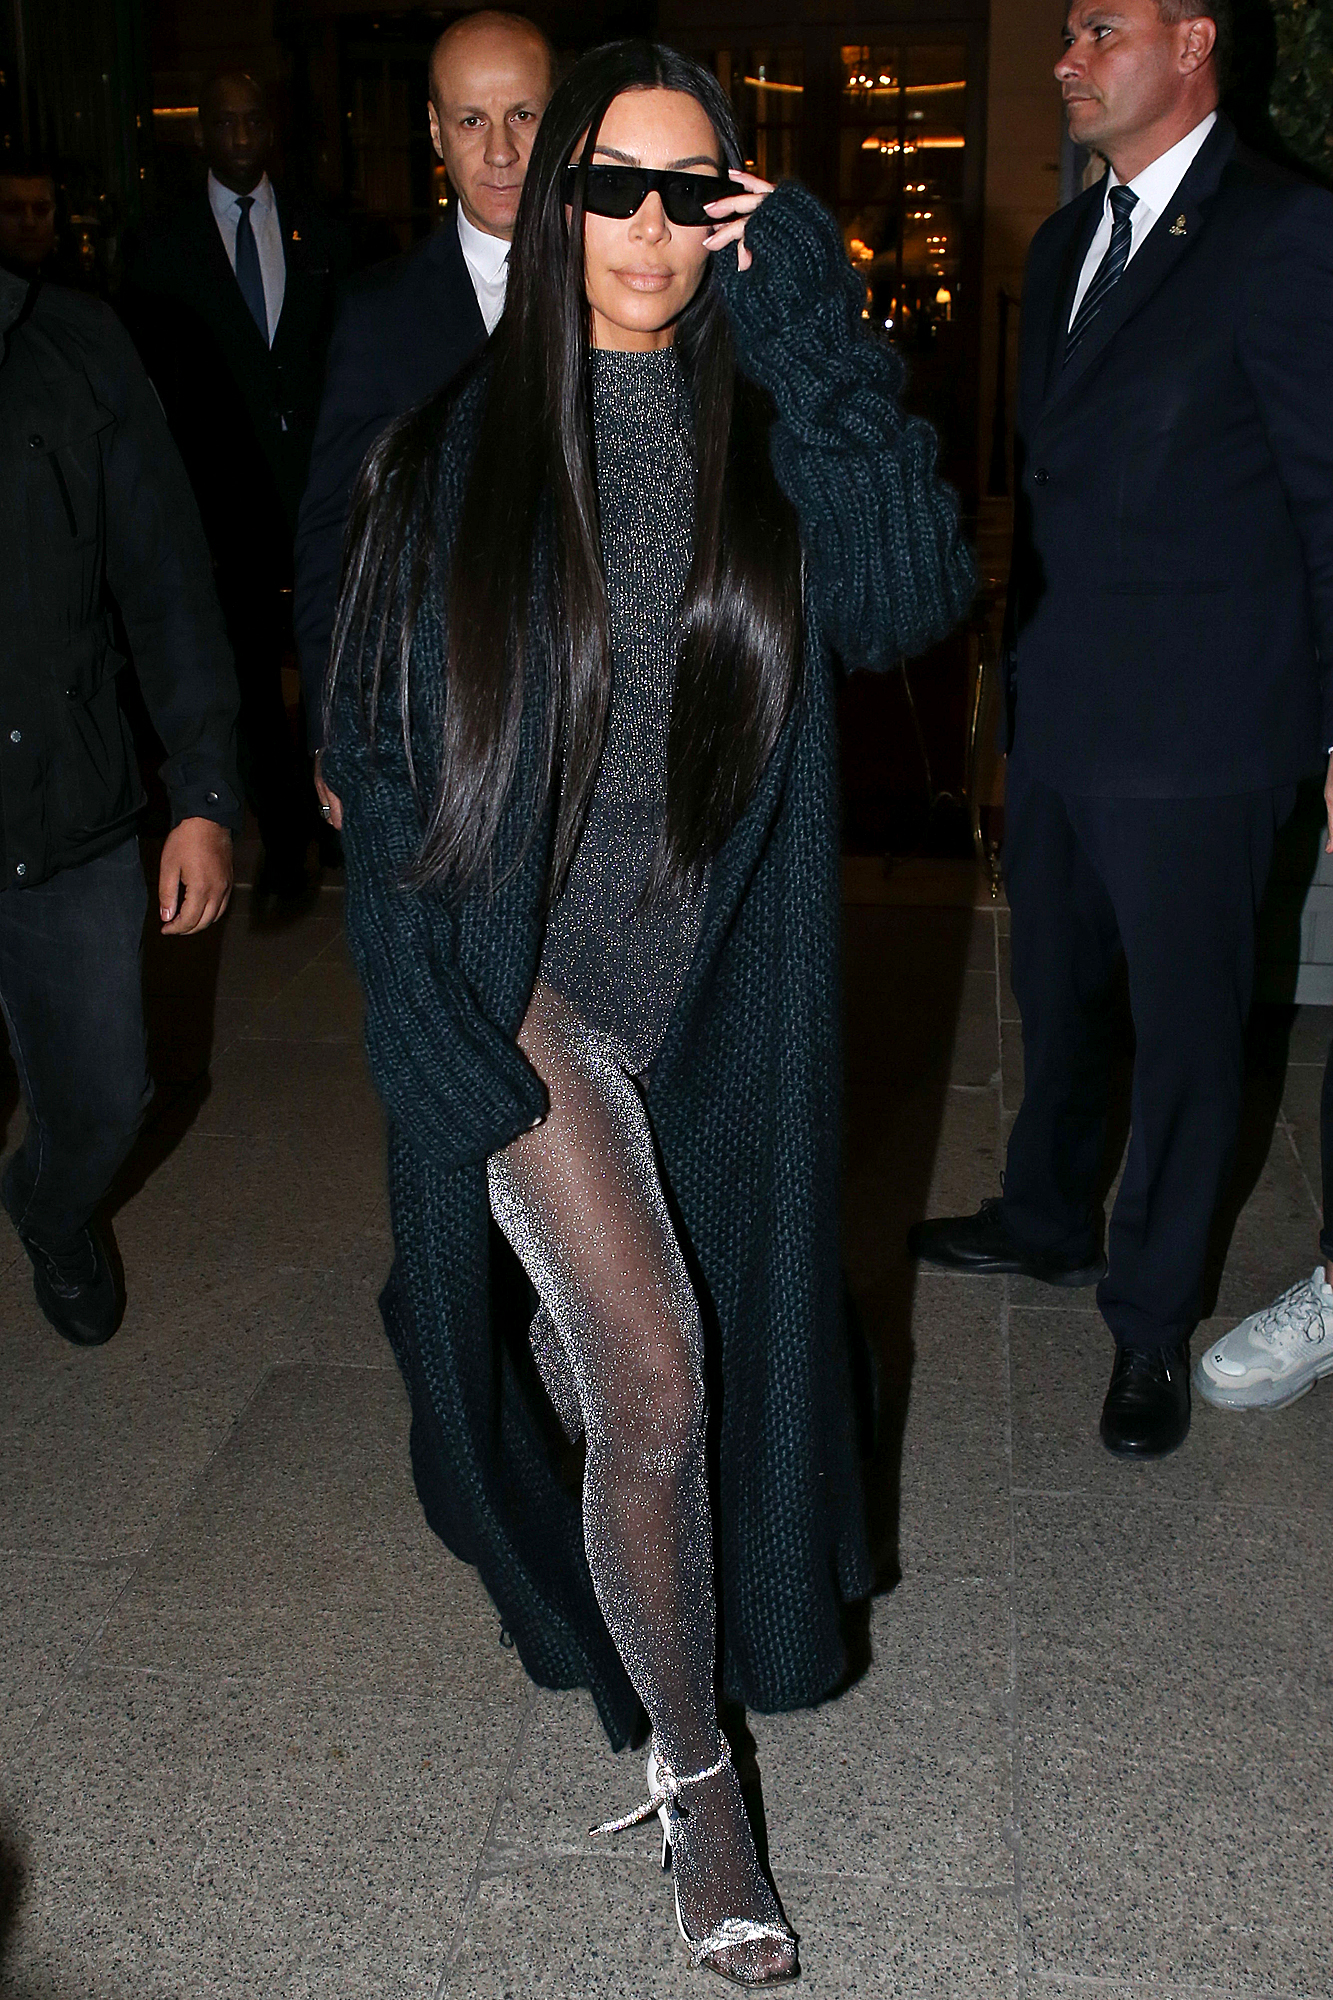 Kim Kardashian is Spotted Exiting The Ritz Hotel in Paris